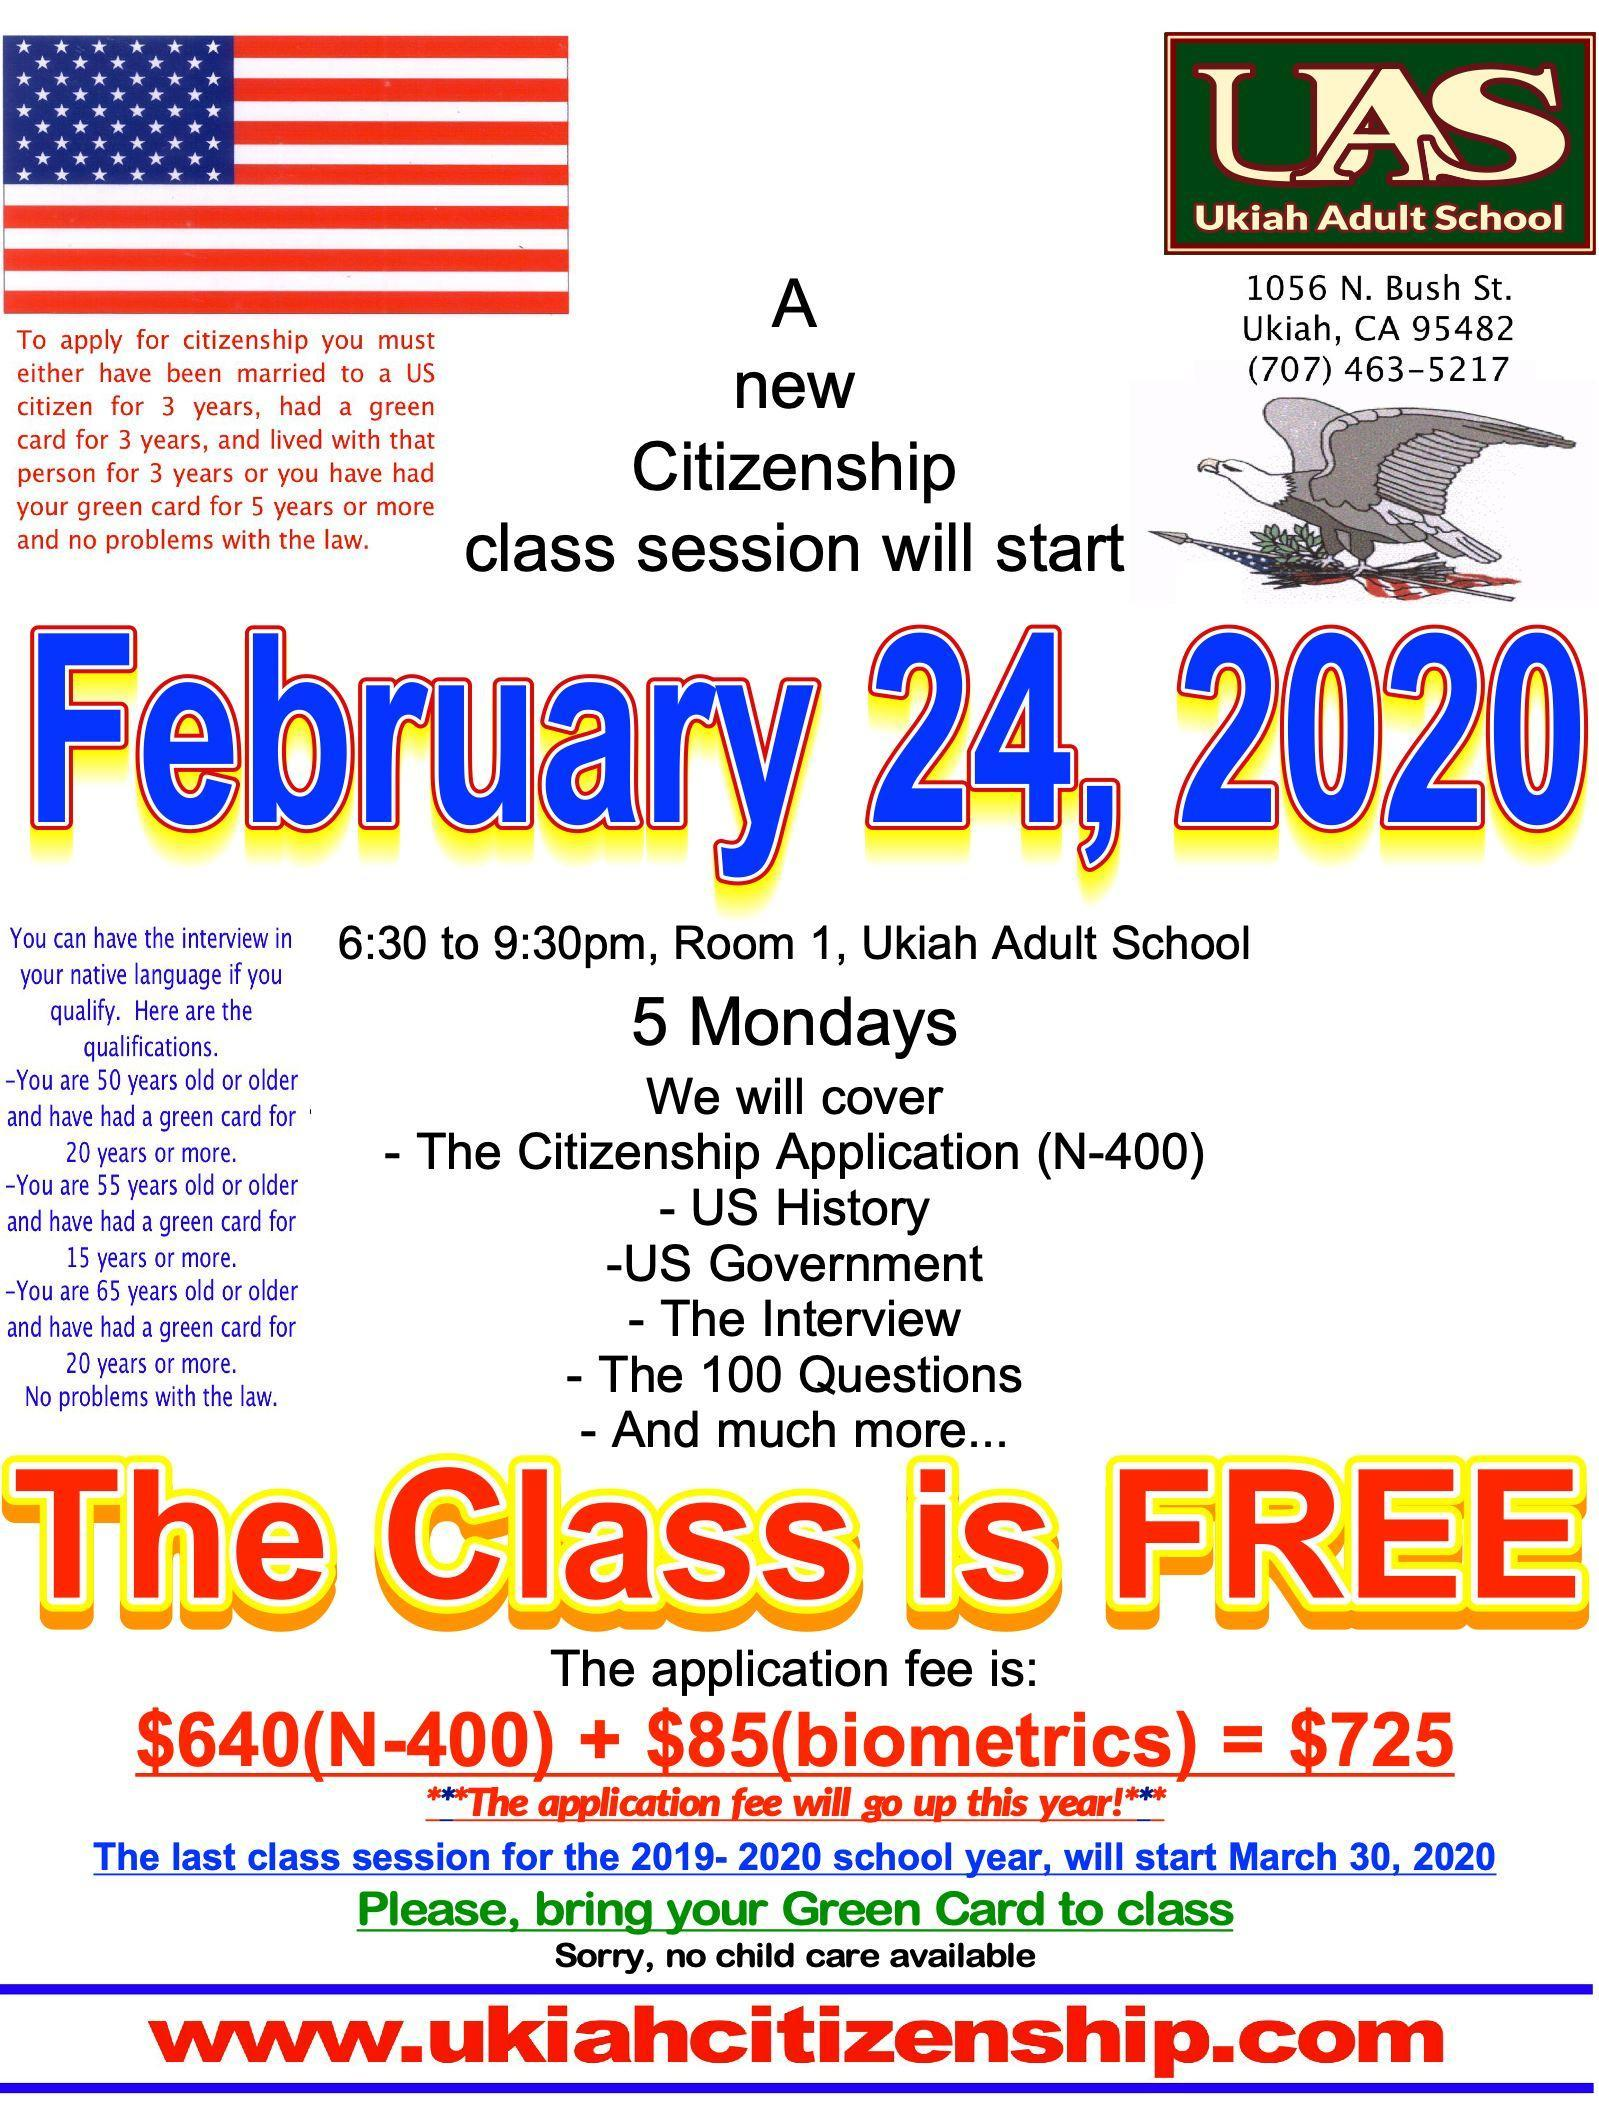 A new citizenship class session start February 24, 2020 poster